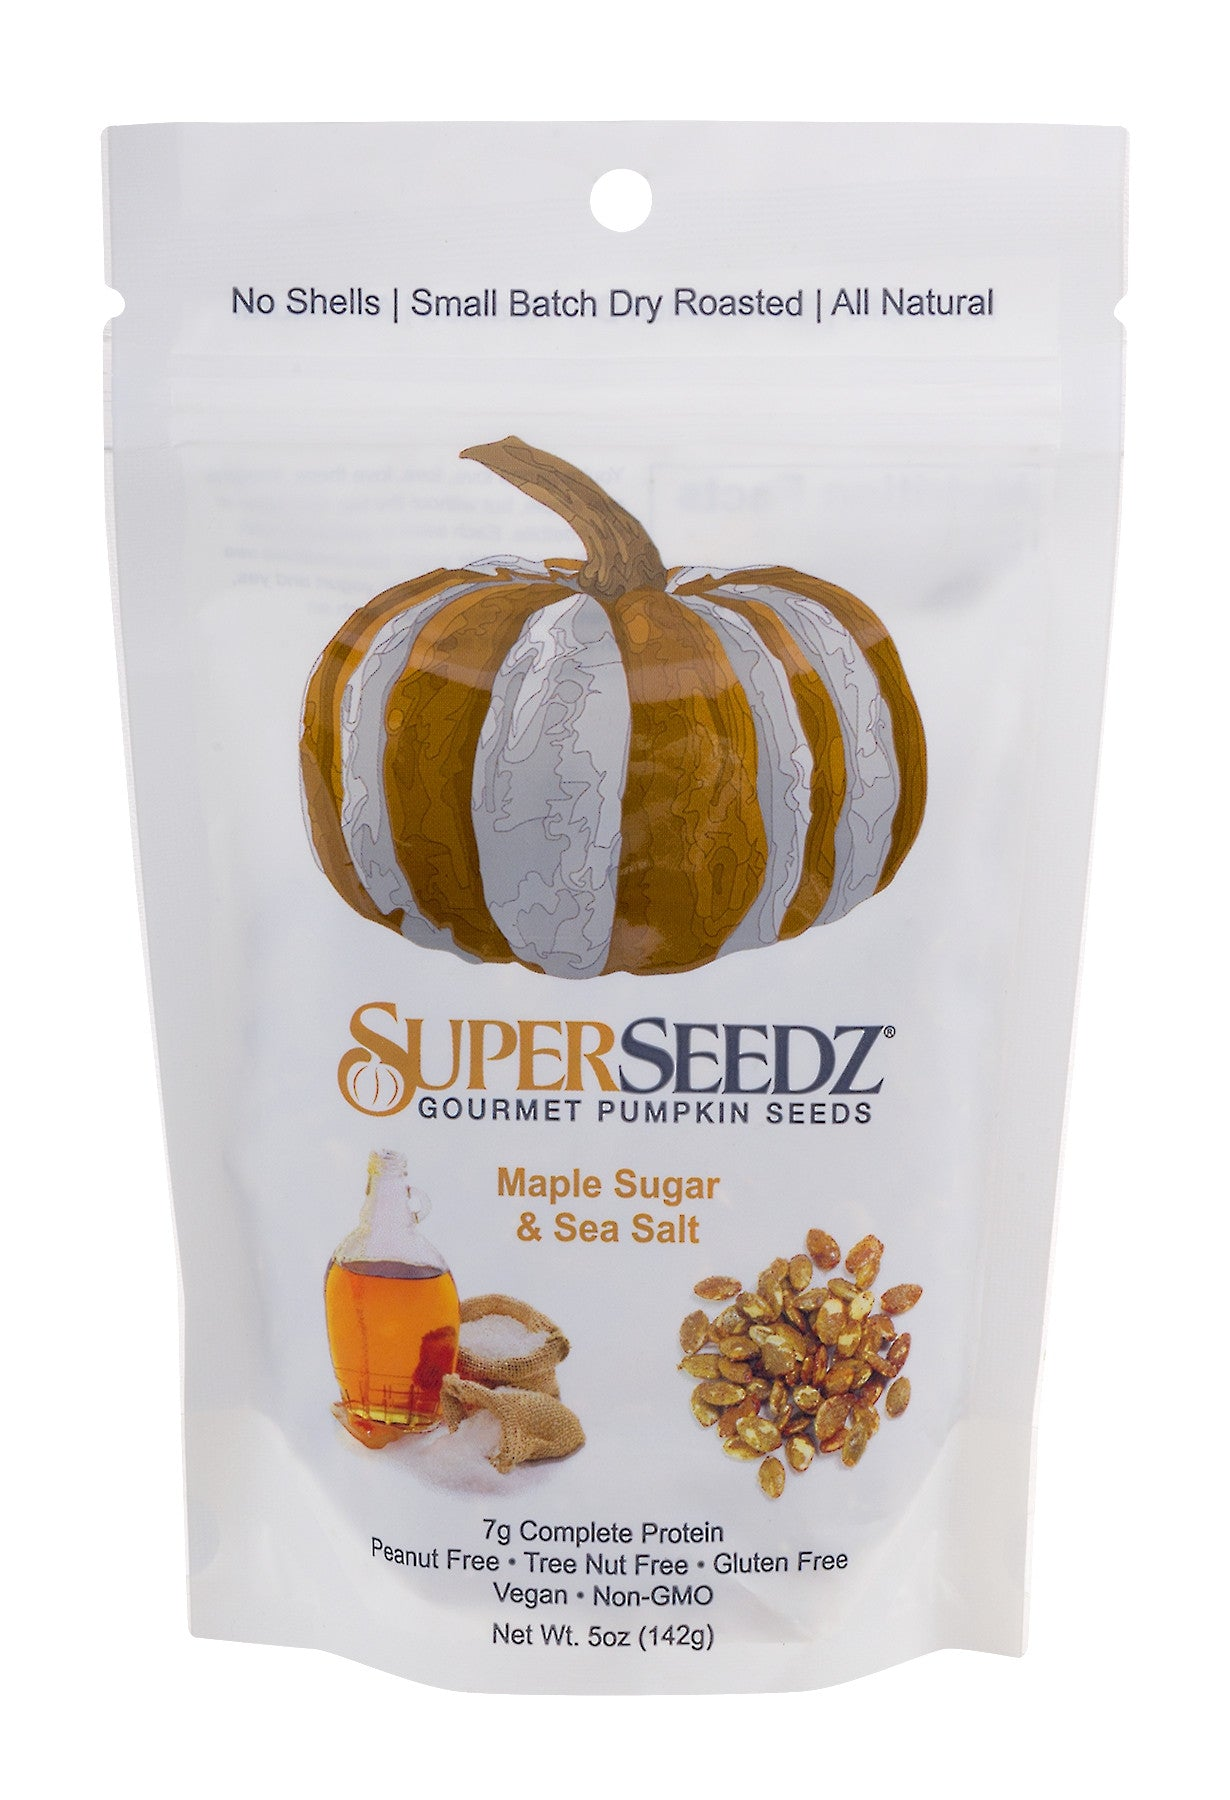 SuperSeedz Gourmet Pumpkin Seeds- Maple Sugar & Sea Salt